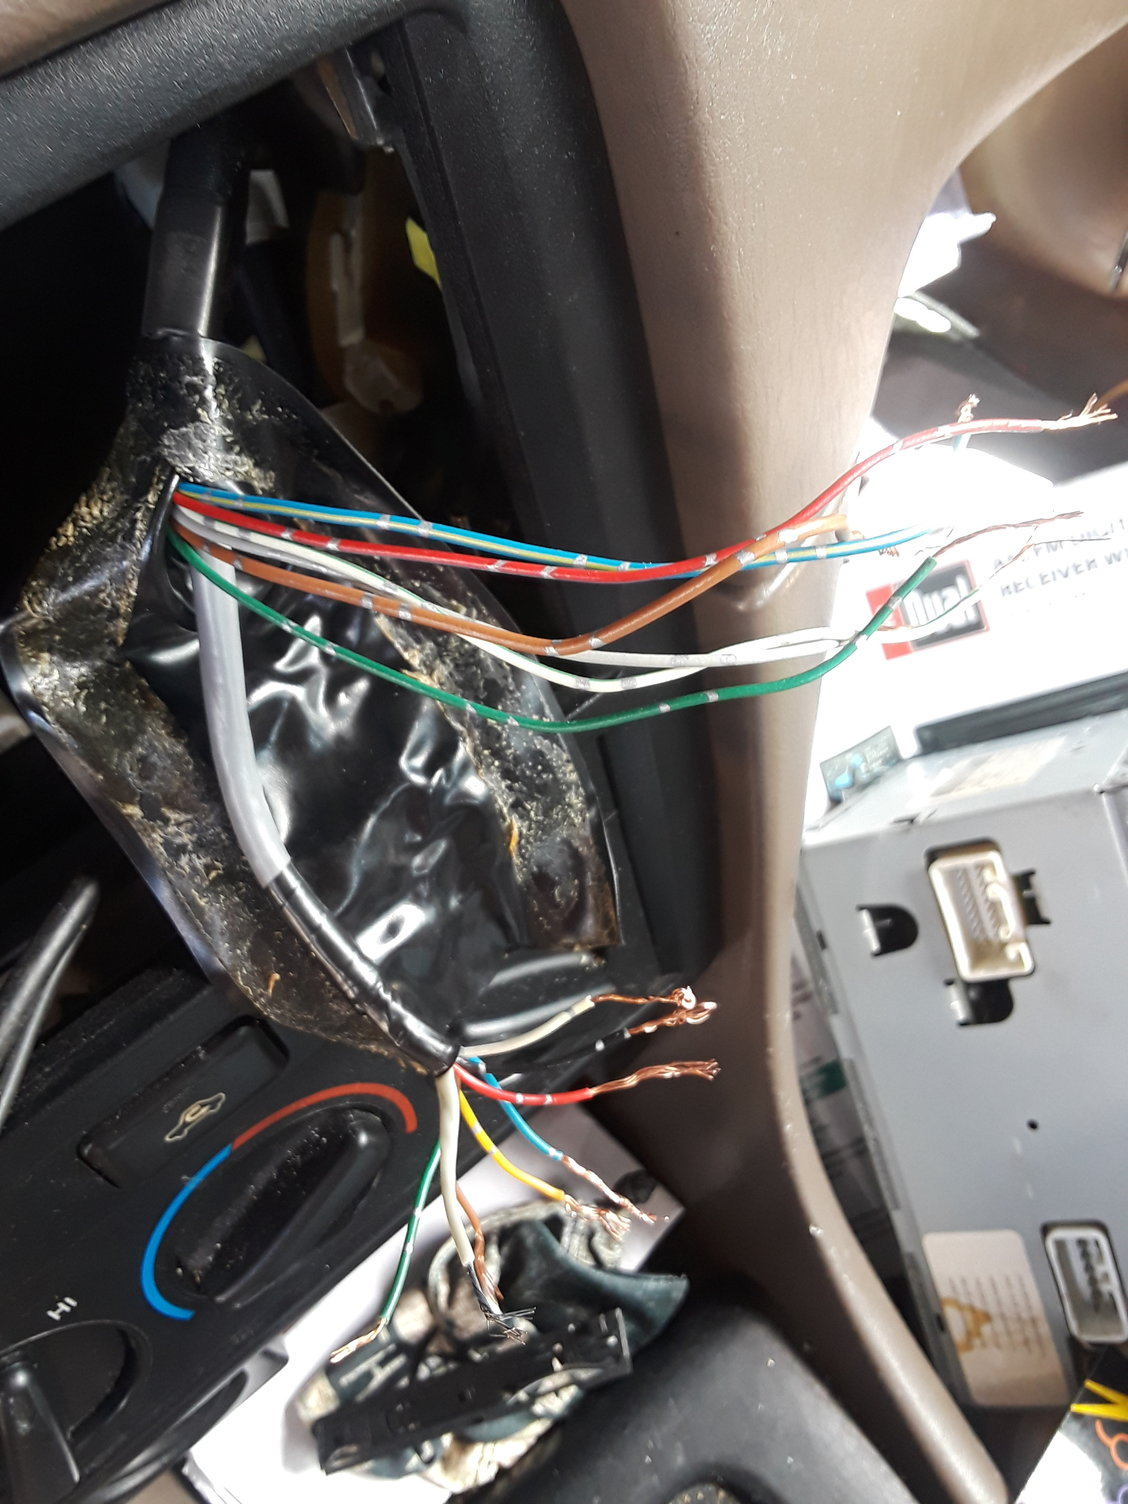 2001 toyota radio wiring. - camry forums - toyota camry forum  camry forums